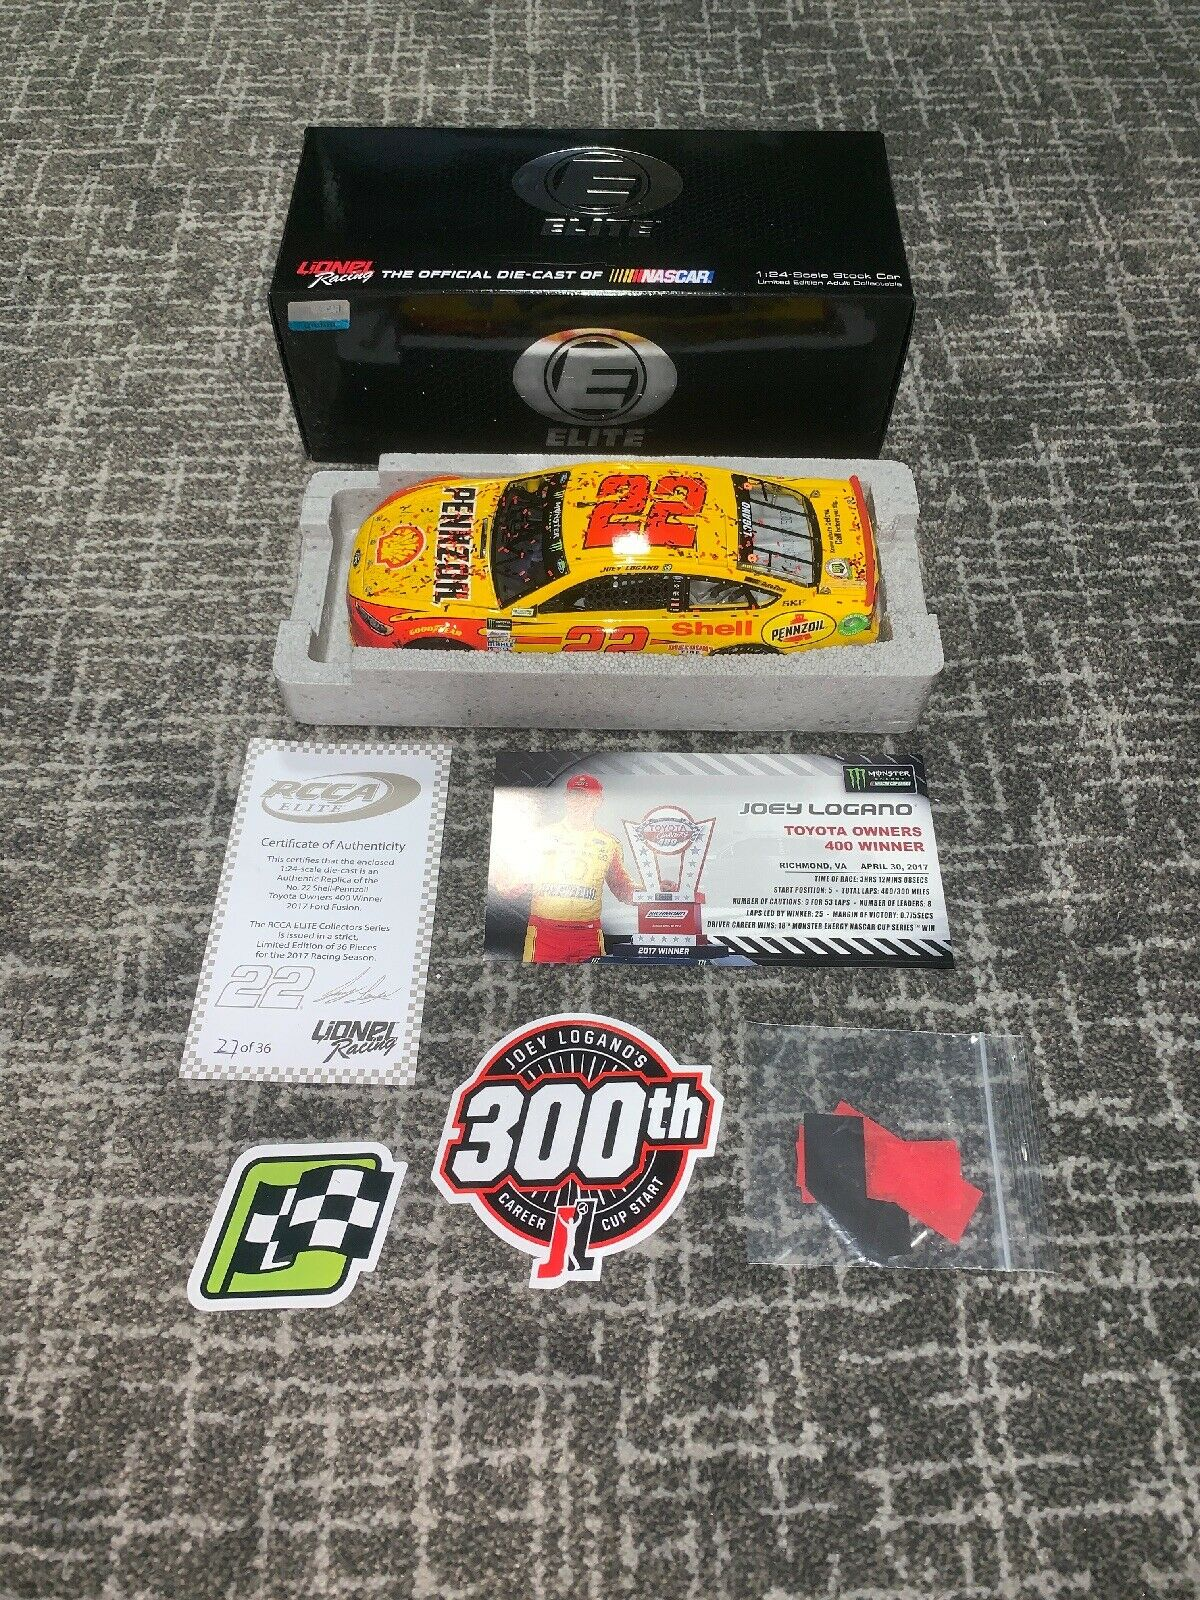 2017 Joey Logano Shell Pennzoil Richmond Raced Win Elite One Of Only 36 Made